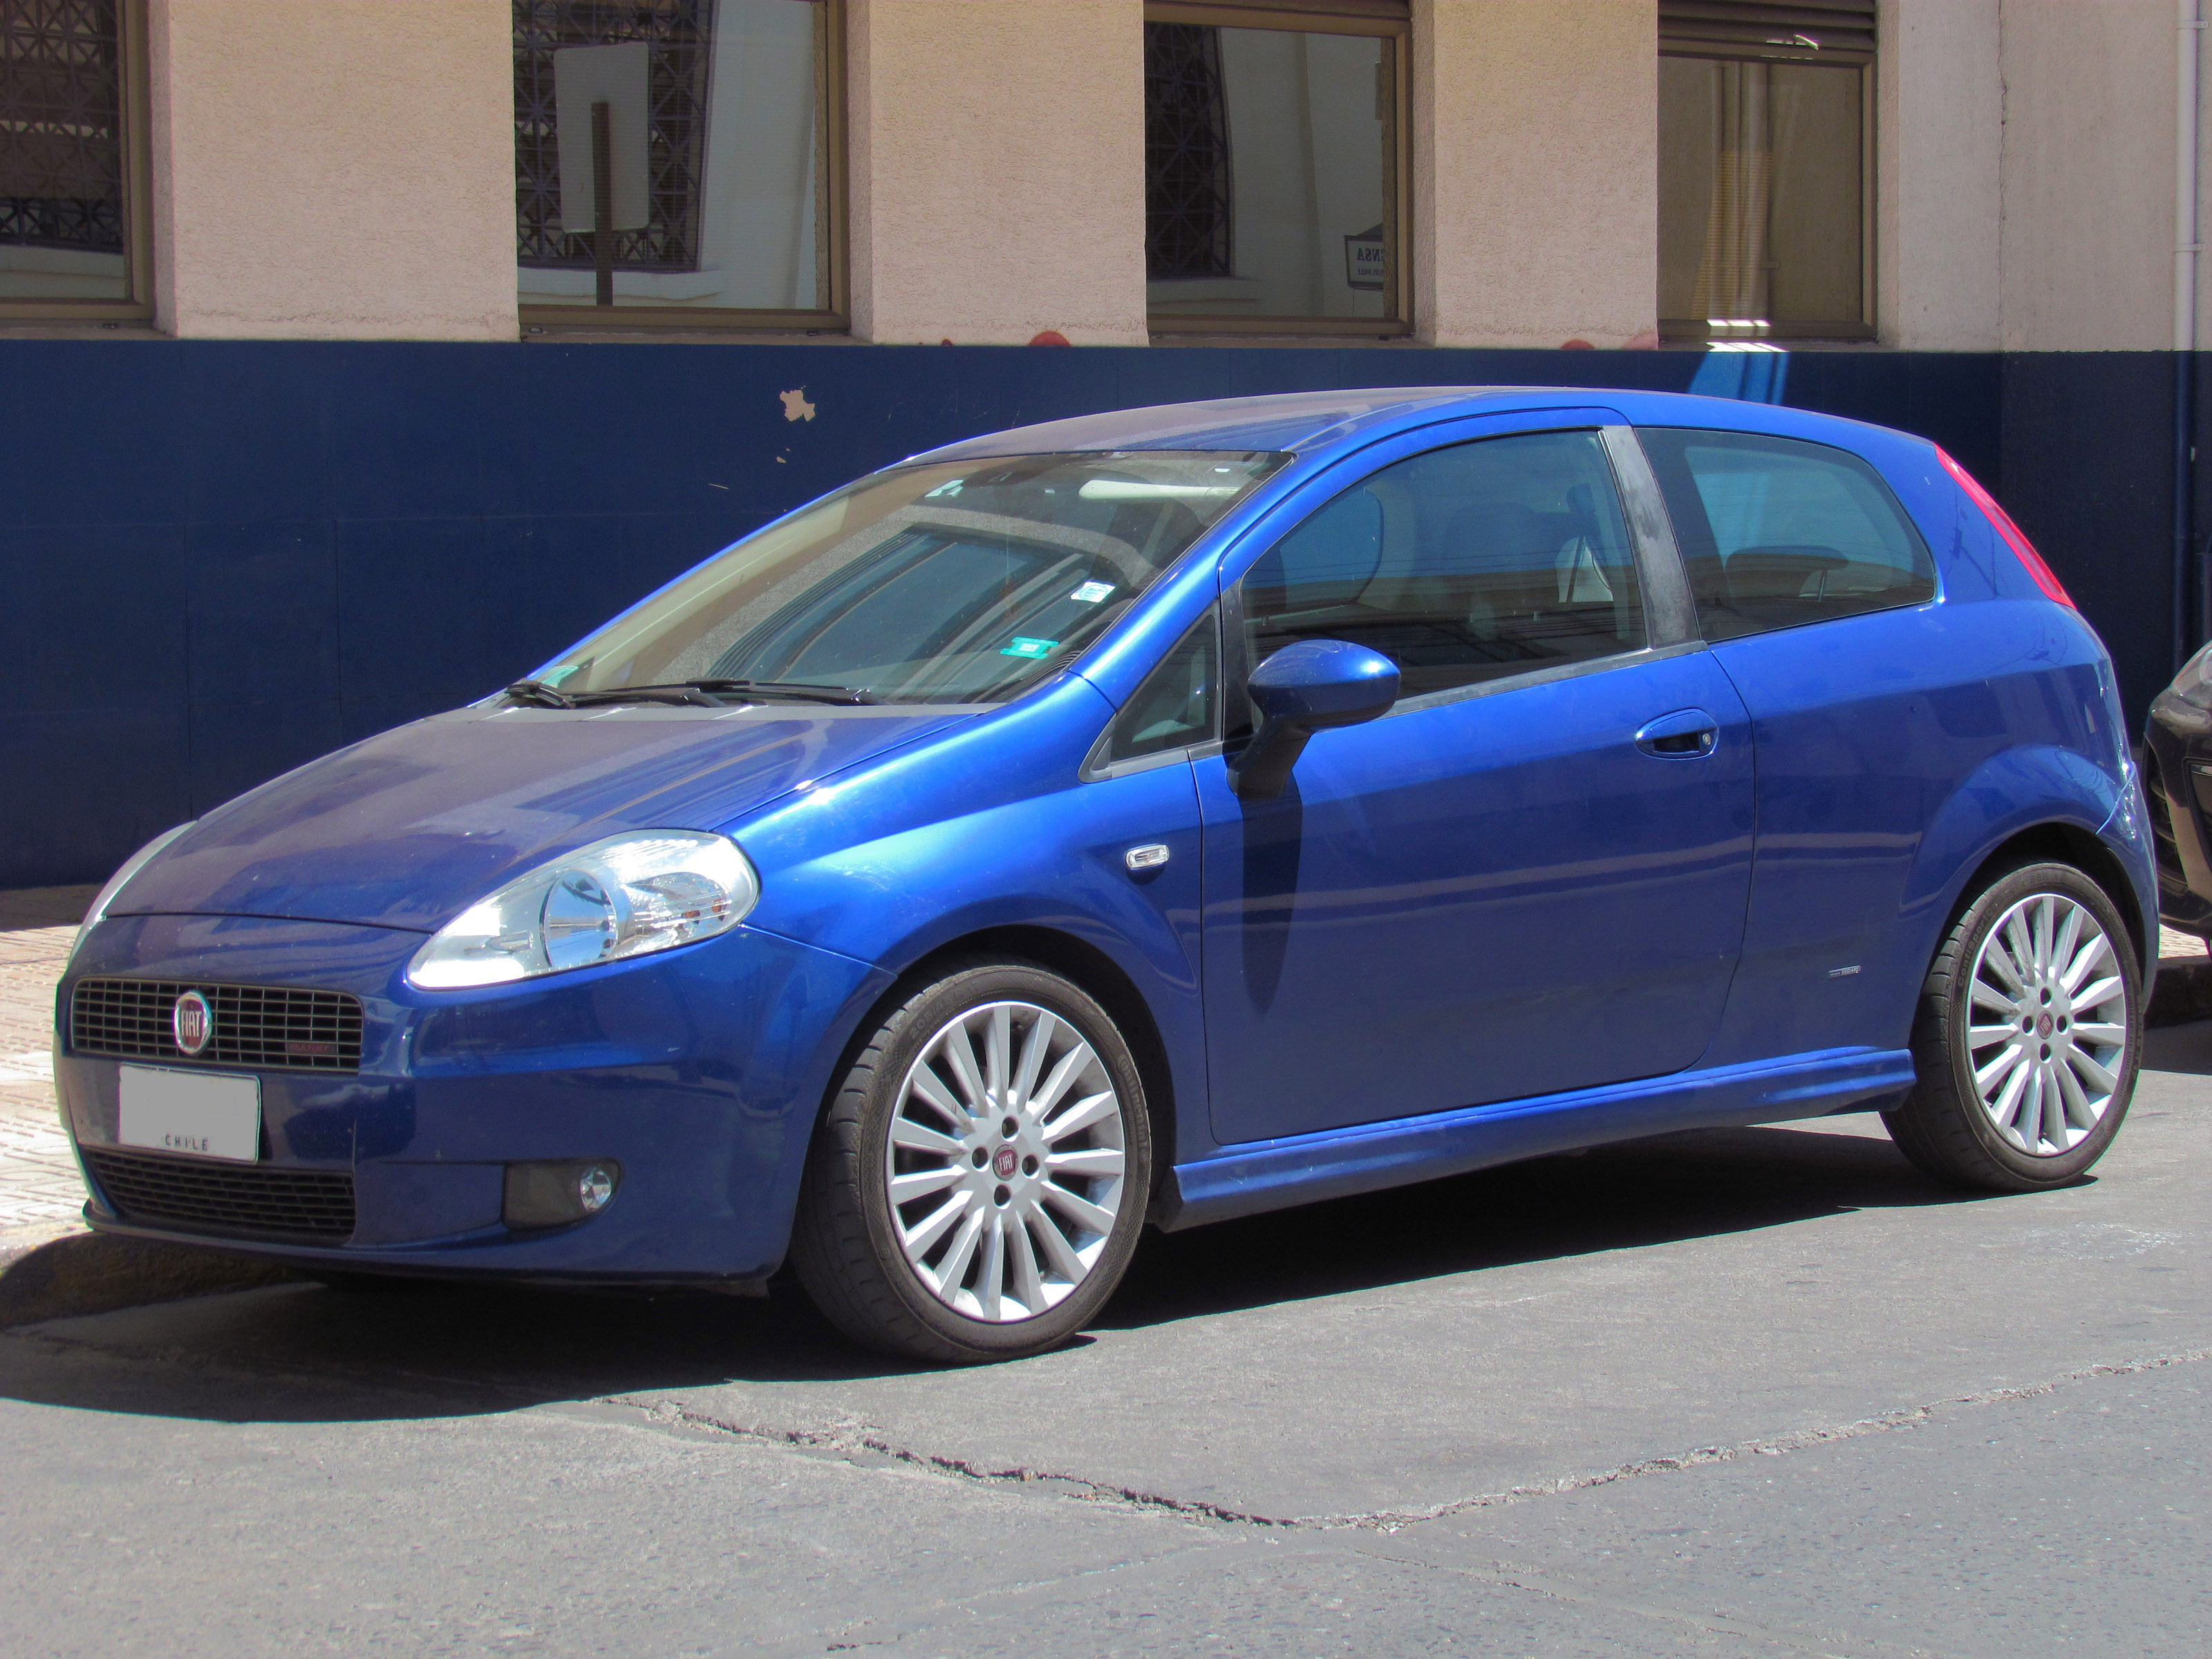 file fiat grande punto 1 9 sporting 2008 12295342094 jpg wikimedia commons. Black Bedroom Furniture Sets. Home Design Ideas